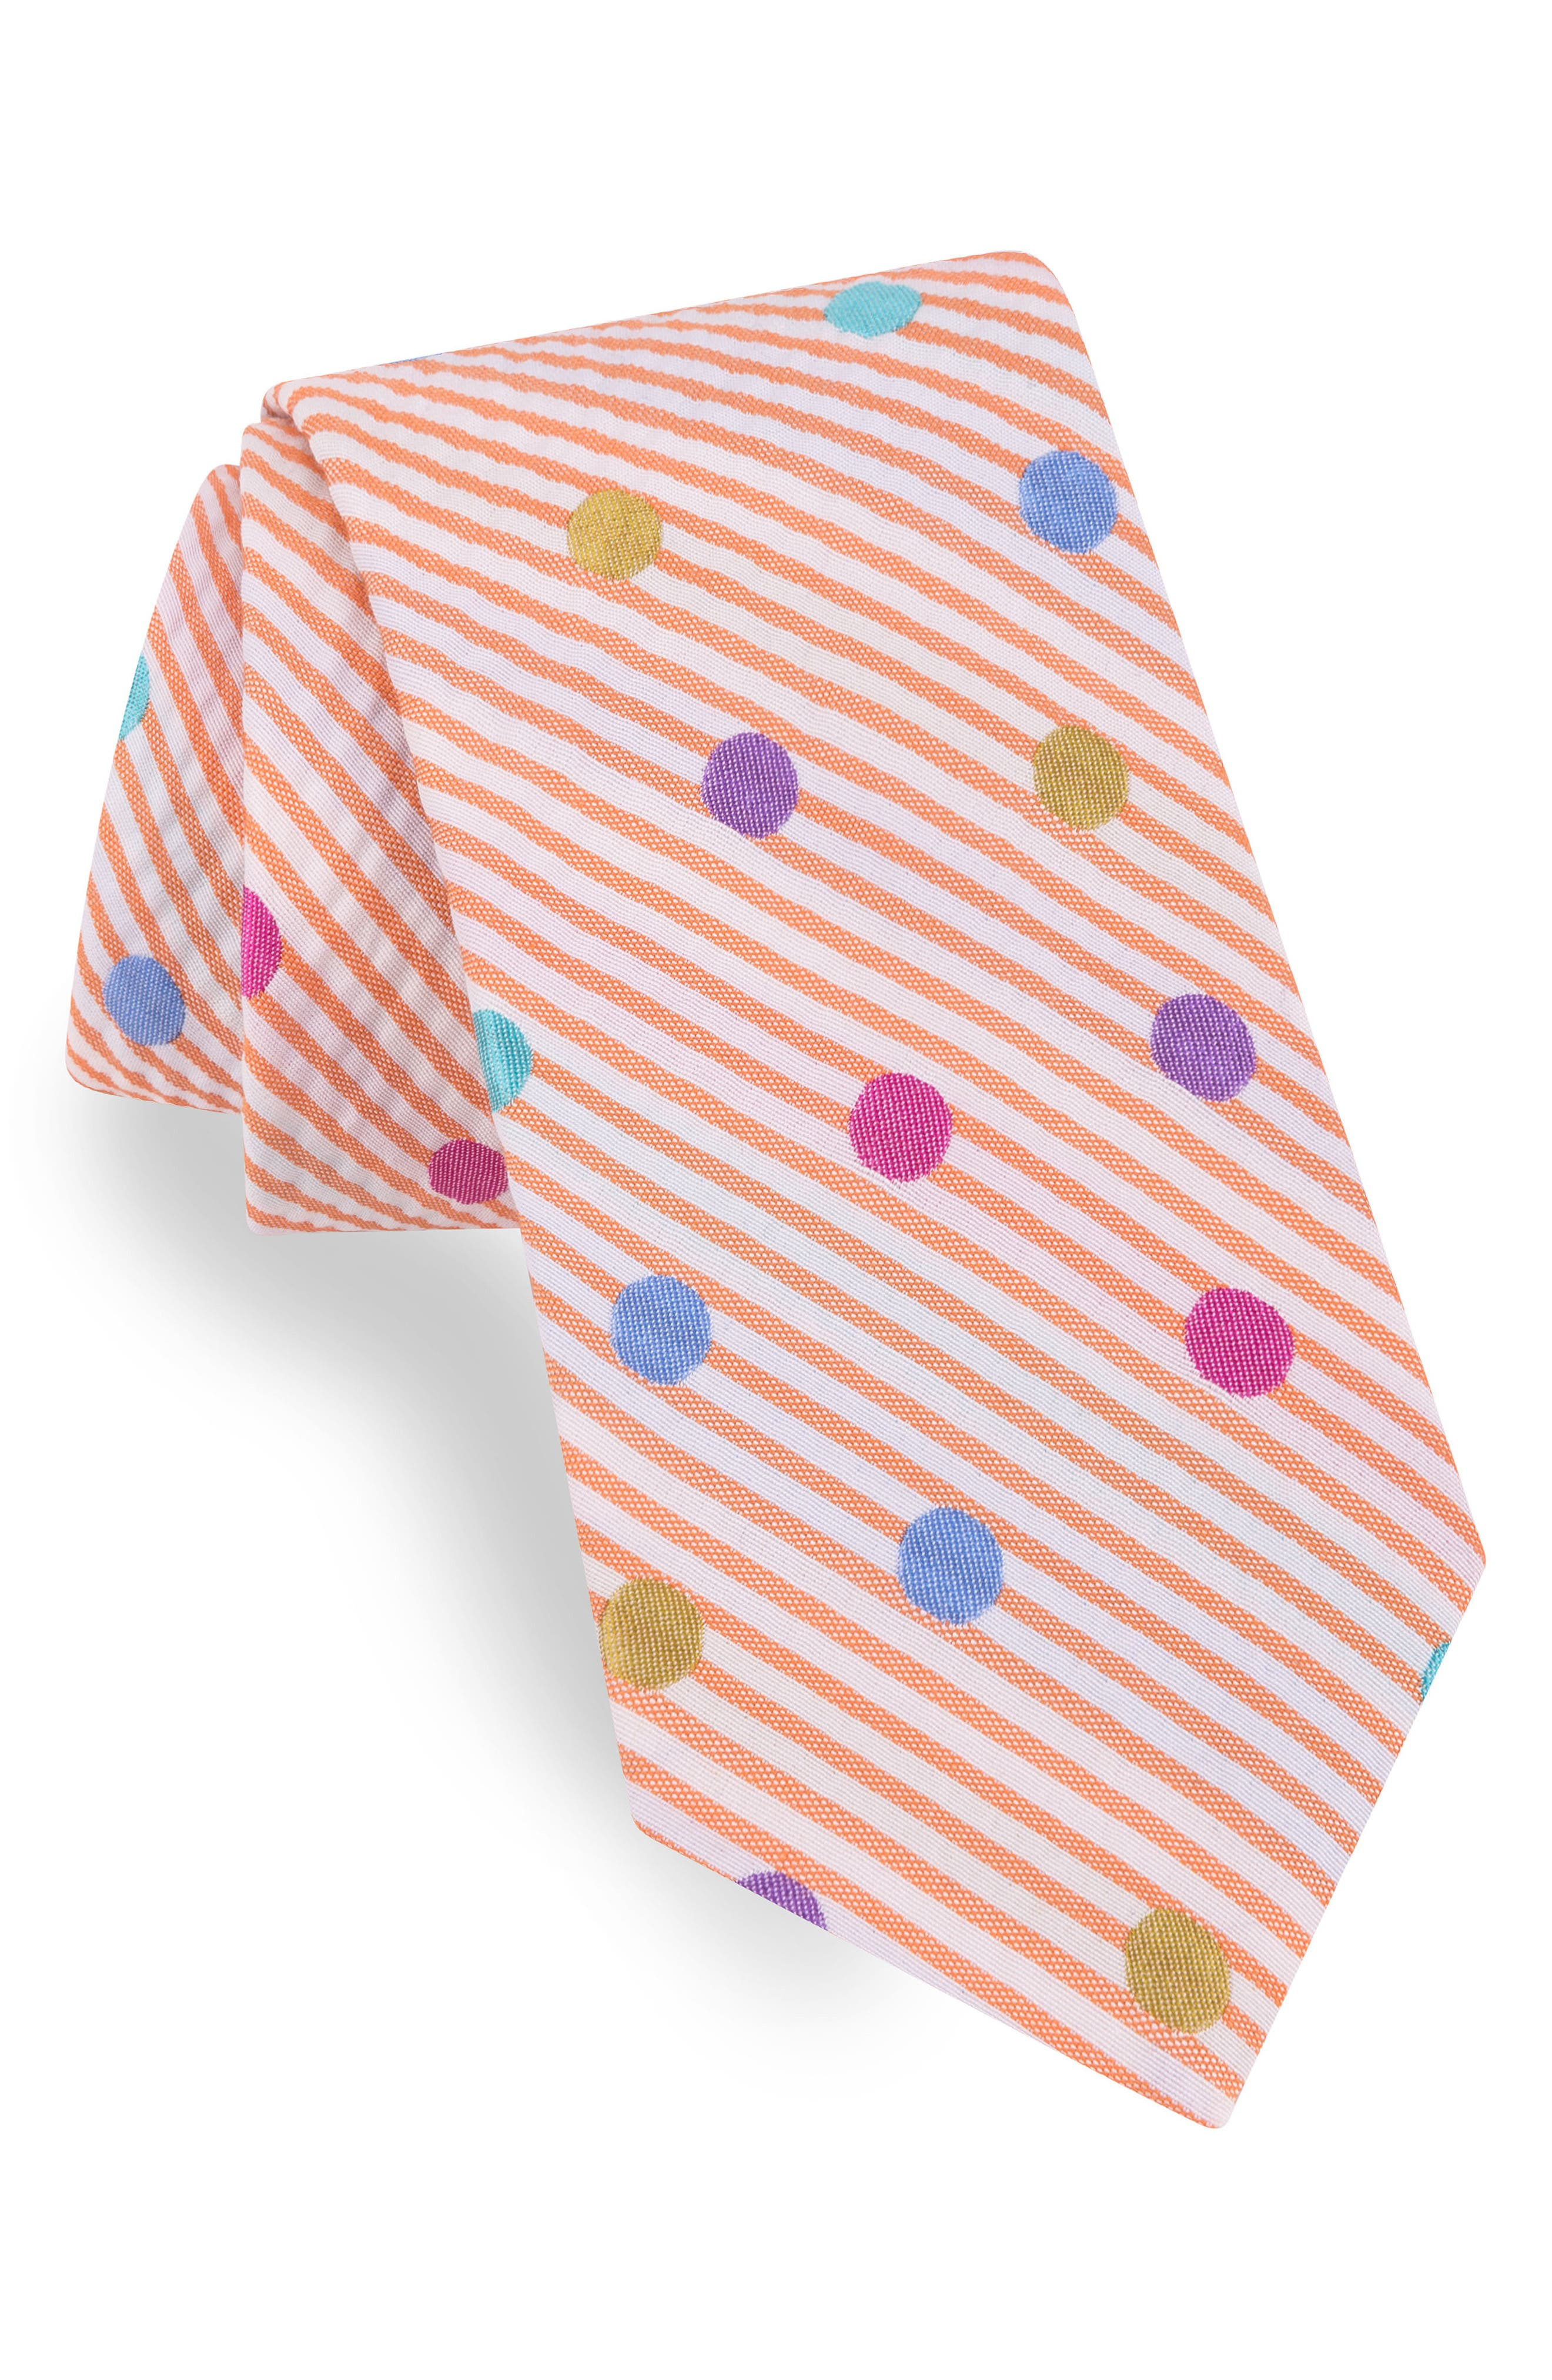 Alternate Image 1 Selected - Ted Baker London Dot Silk & Cotton Tie